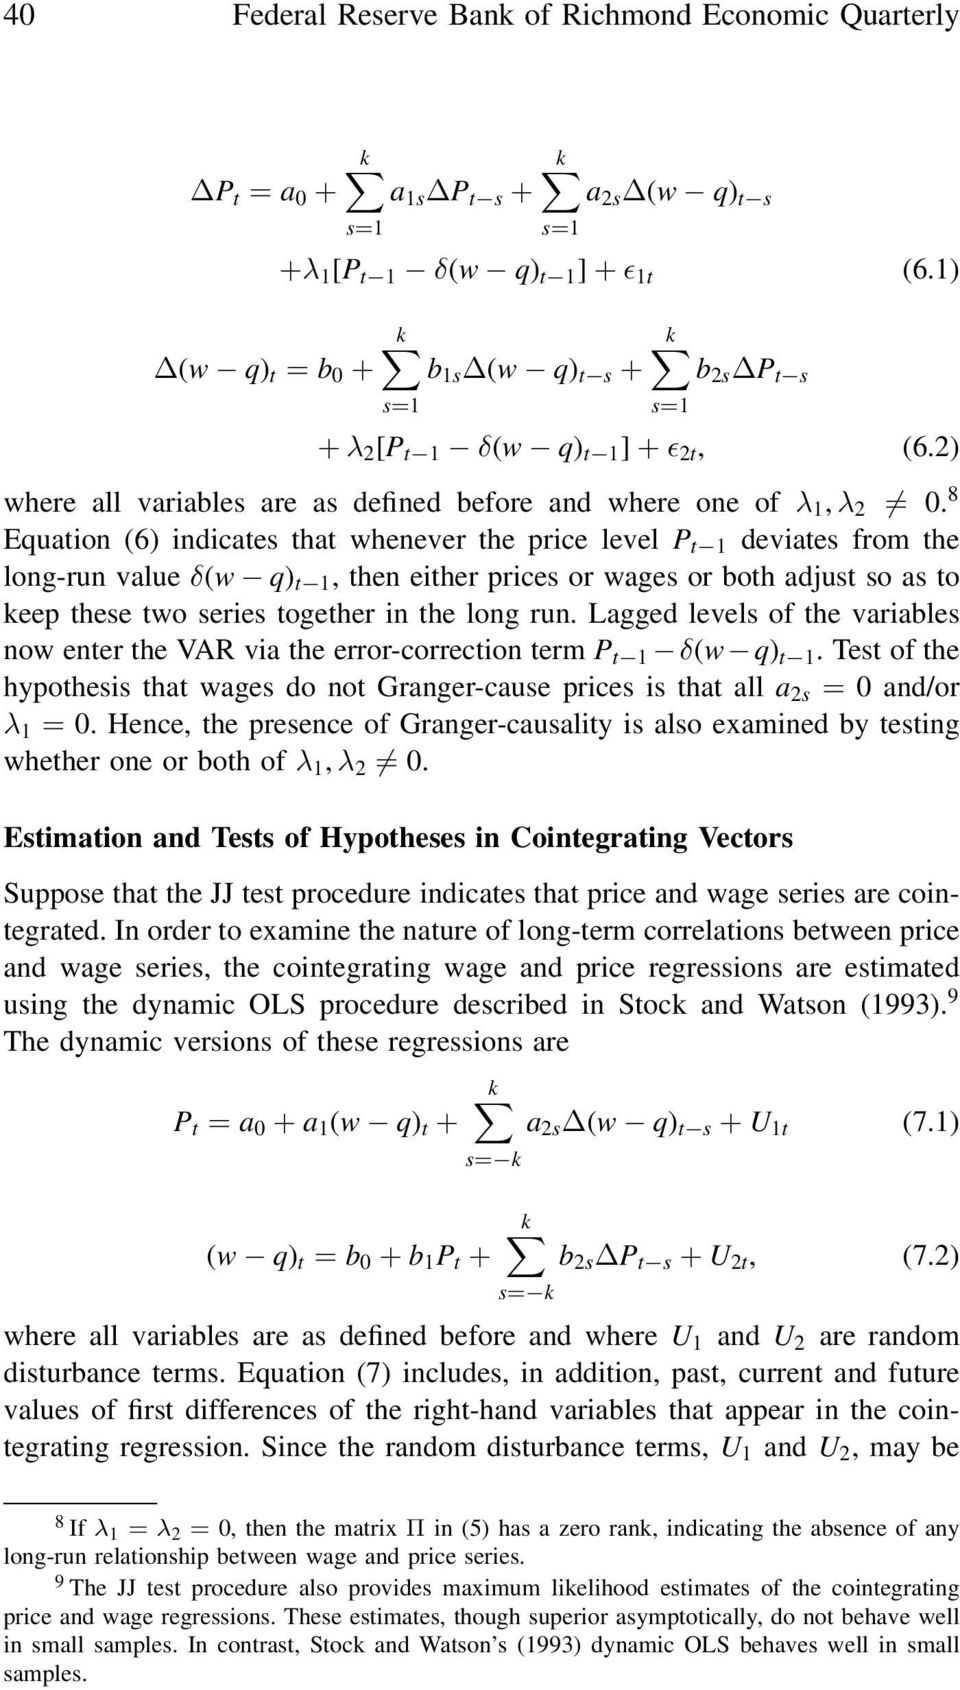 8 Equation (6) indicates that whenever the price level P t 1 deviates from the long-run value δ(w q) t 1, then either prices or wages or both adjust so as to keep these two series together in the